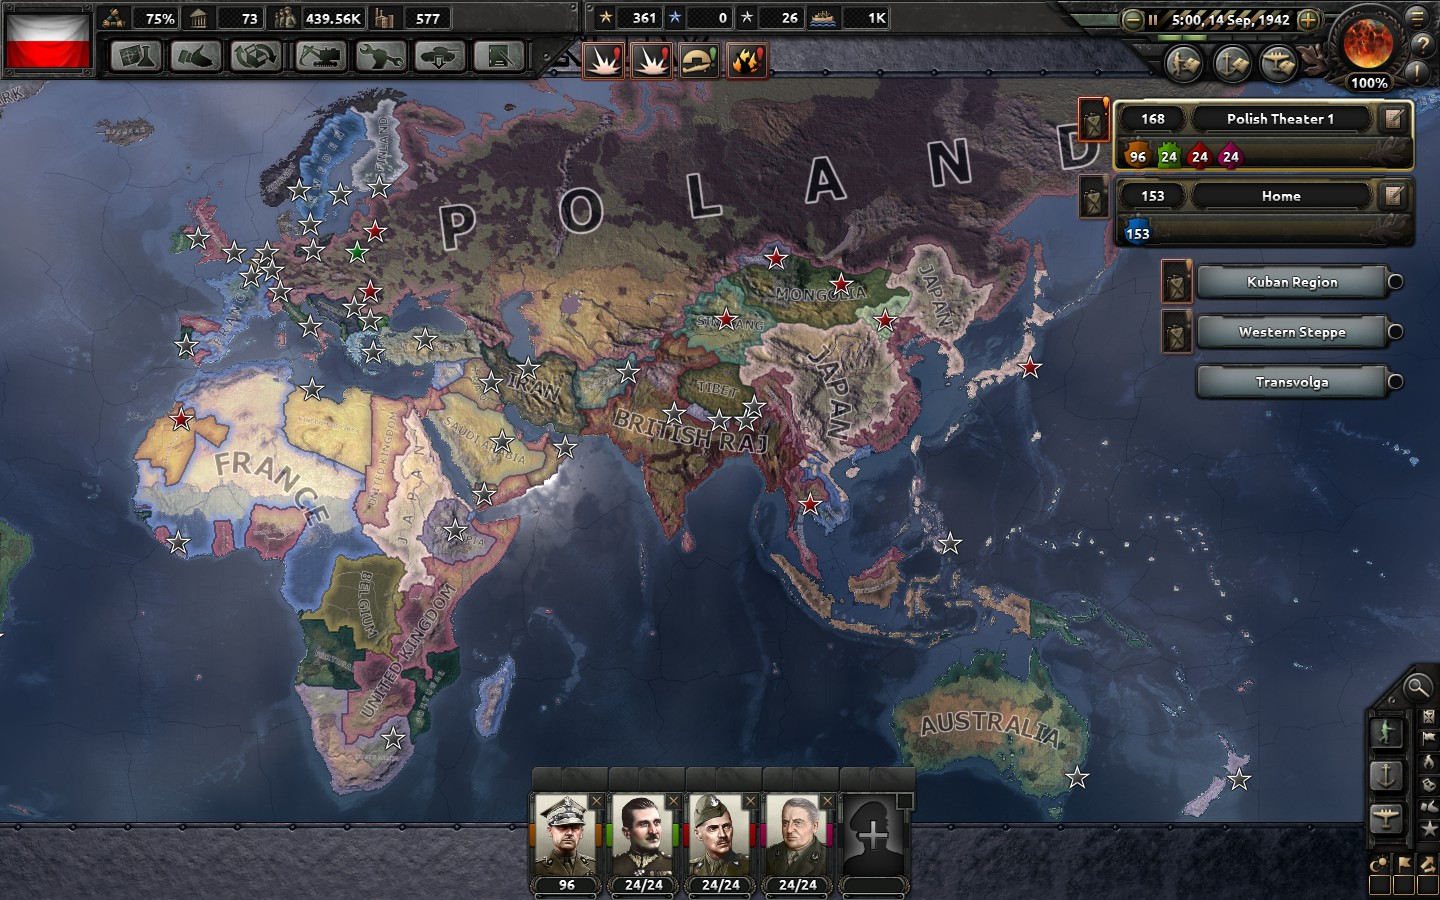 Trying to survive as Poland | Paradox Interactive Forums